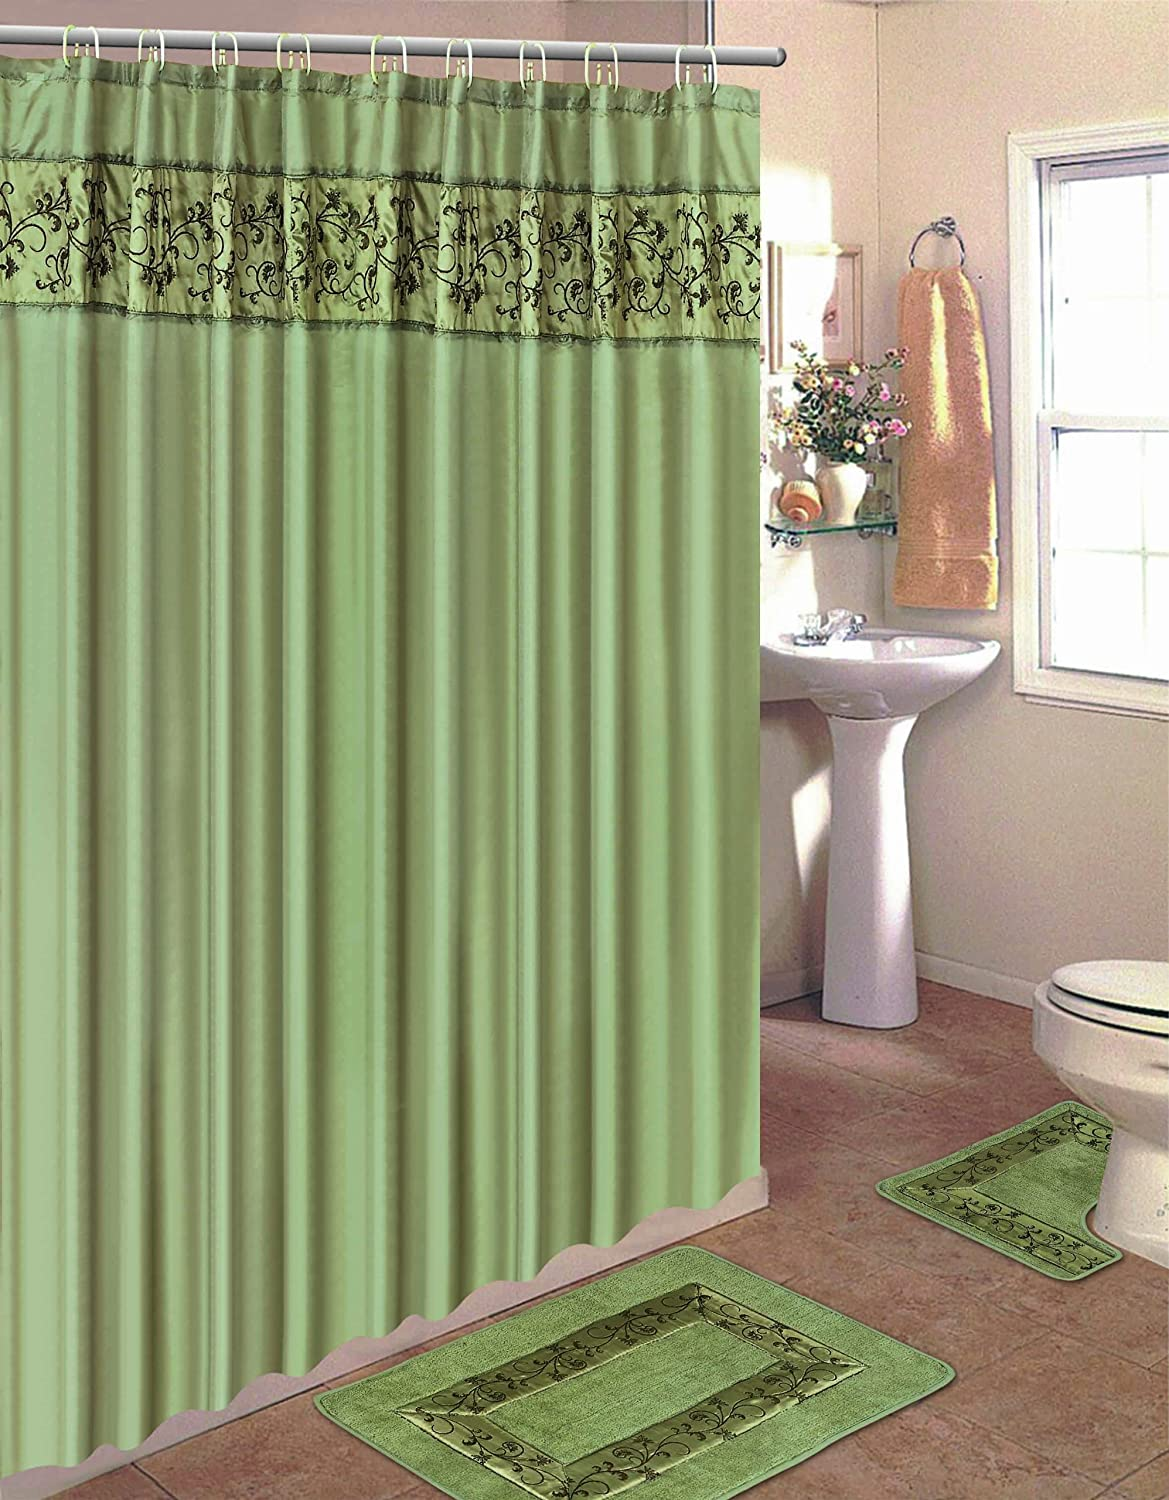 Embroidery 15-Piece Bathroom Accessory Set Bath Mats Shower Curtain - Green Floral